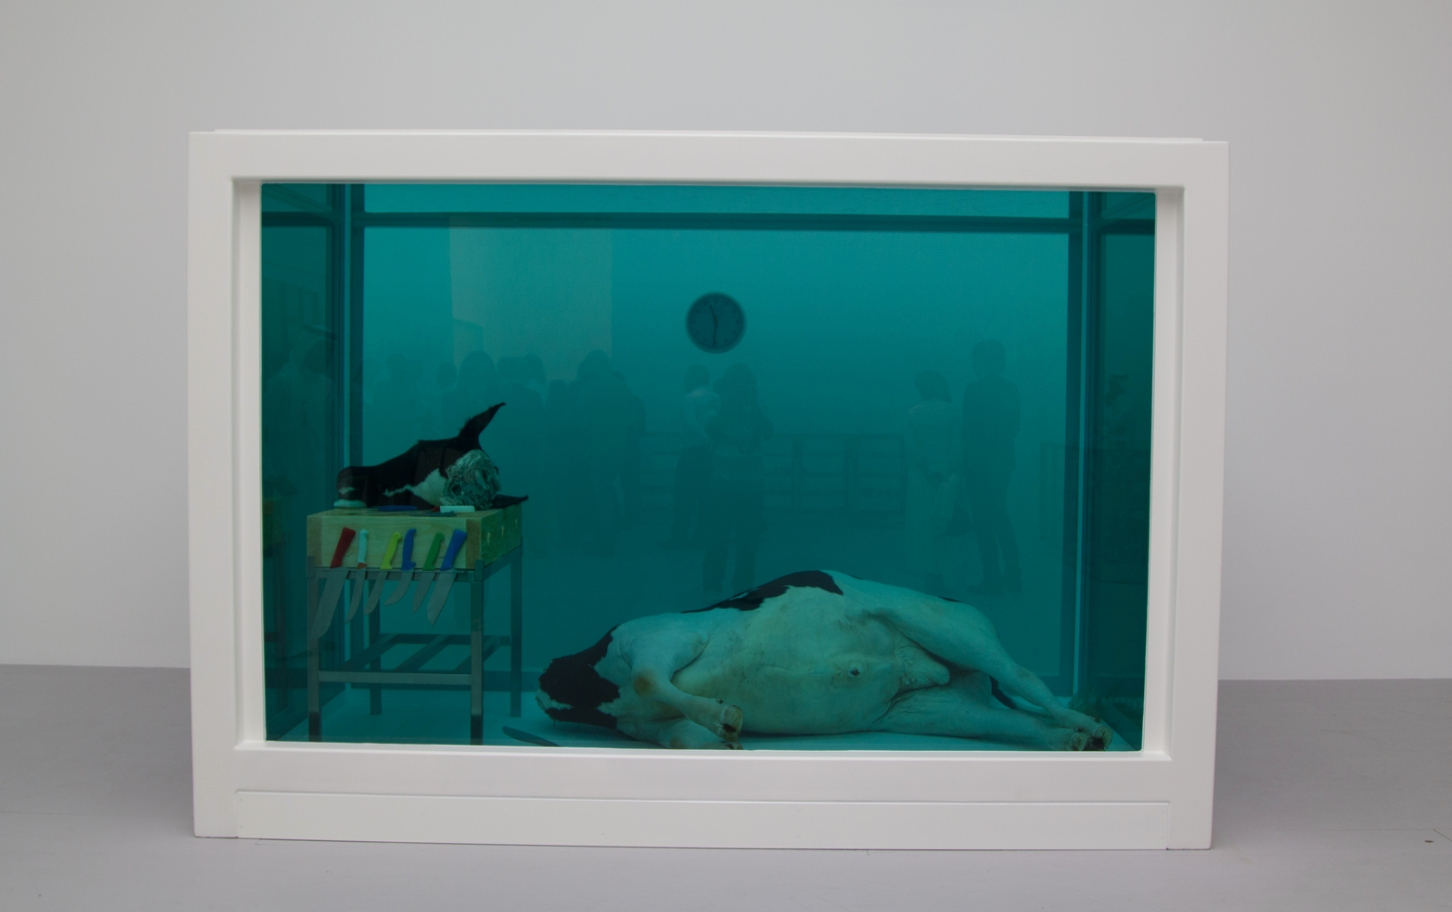 Dead cow by Damien Hirst